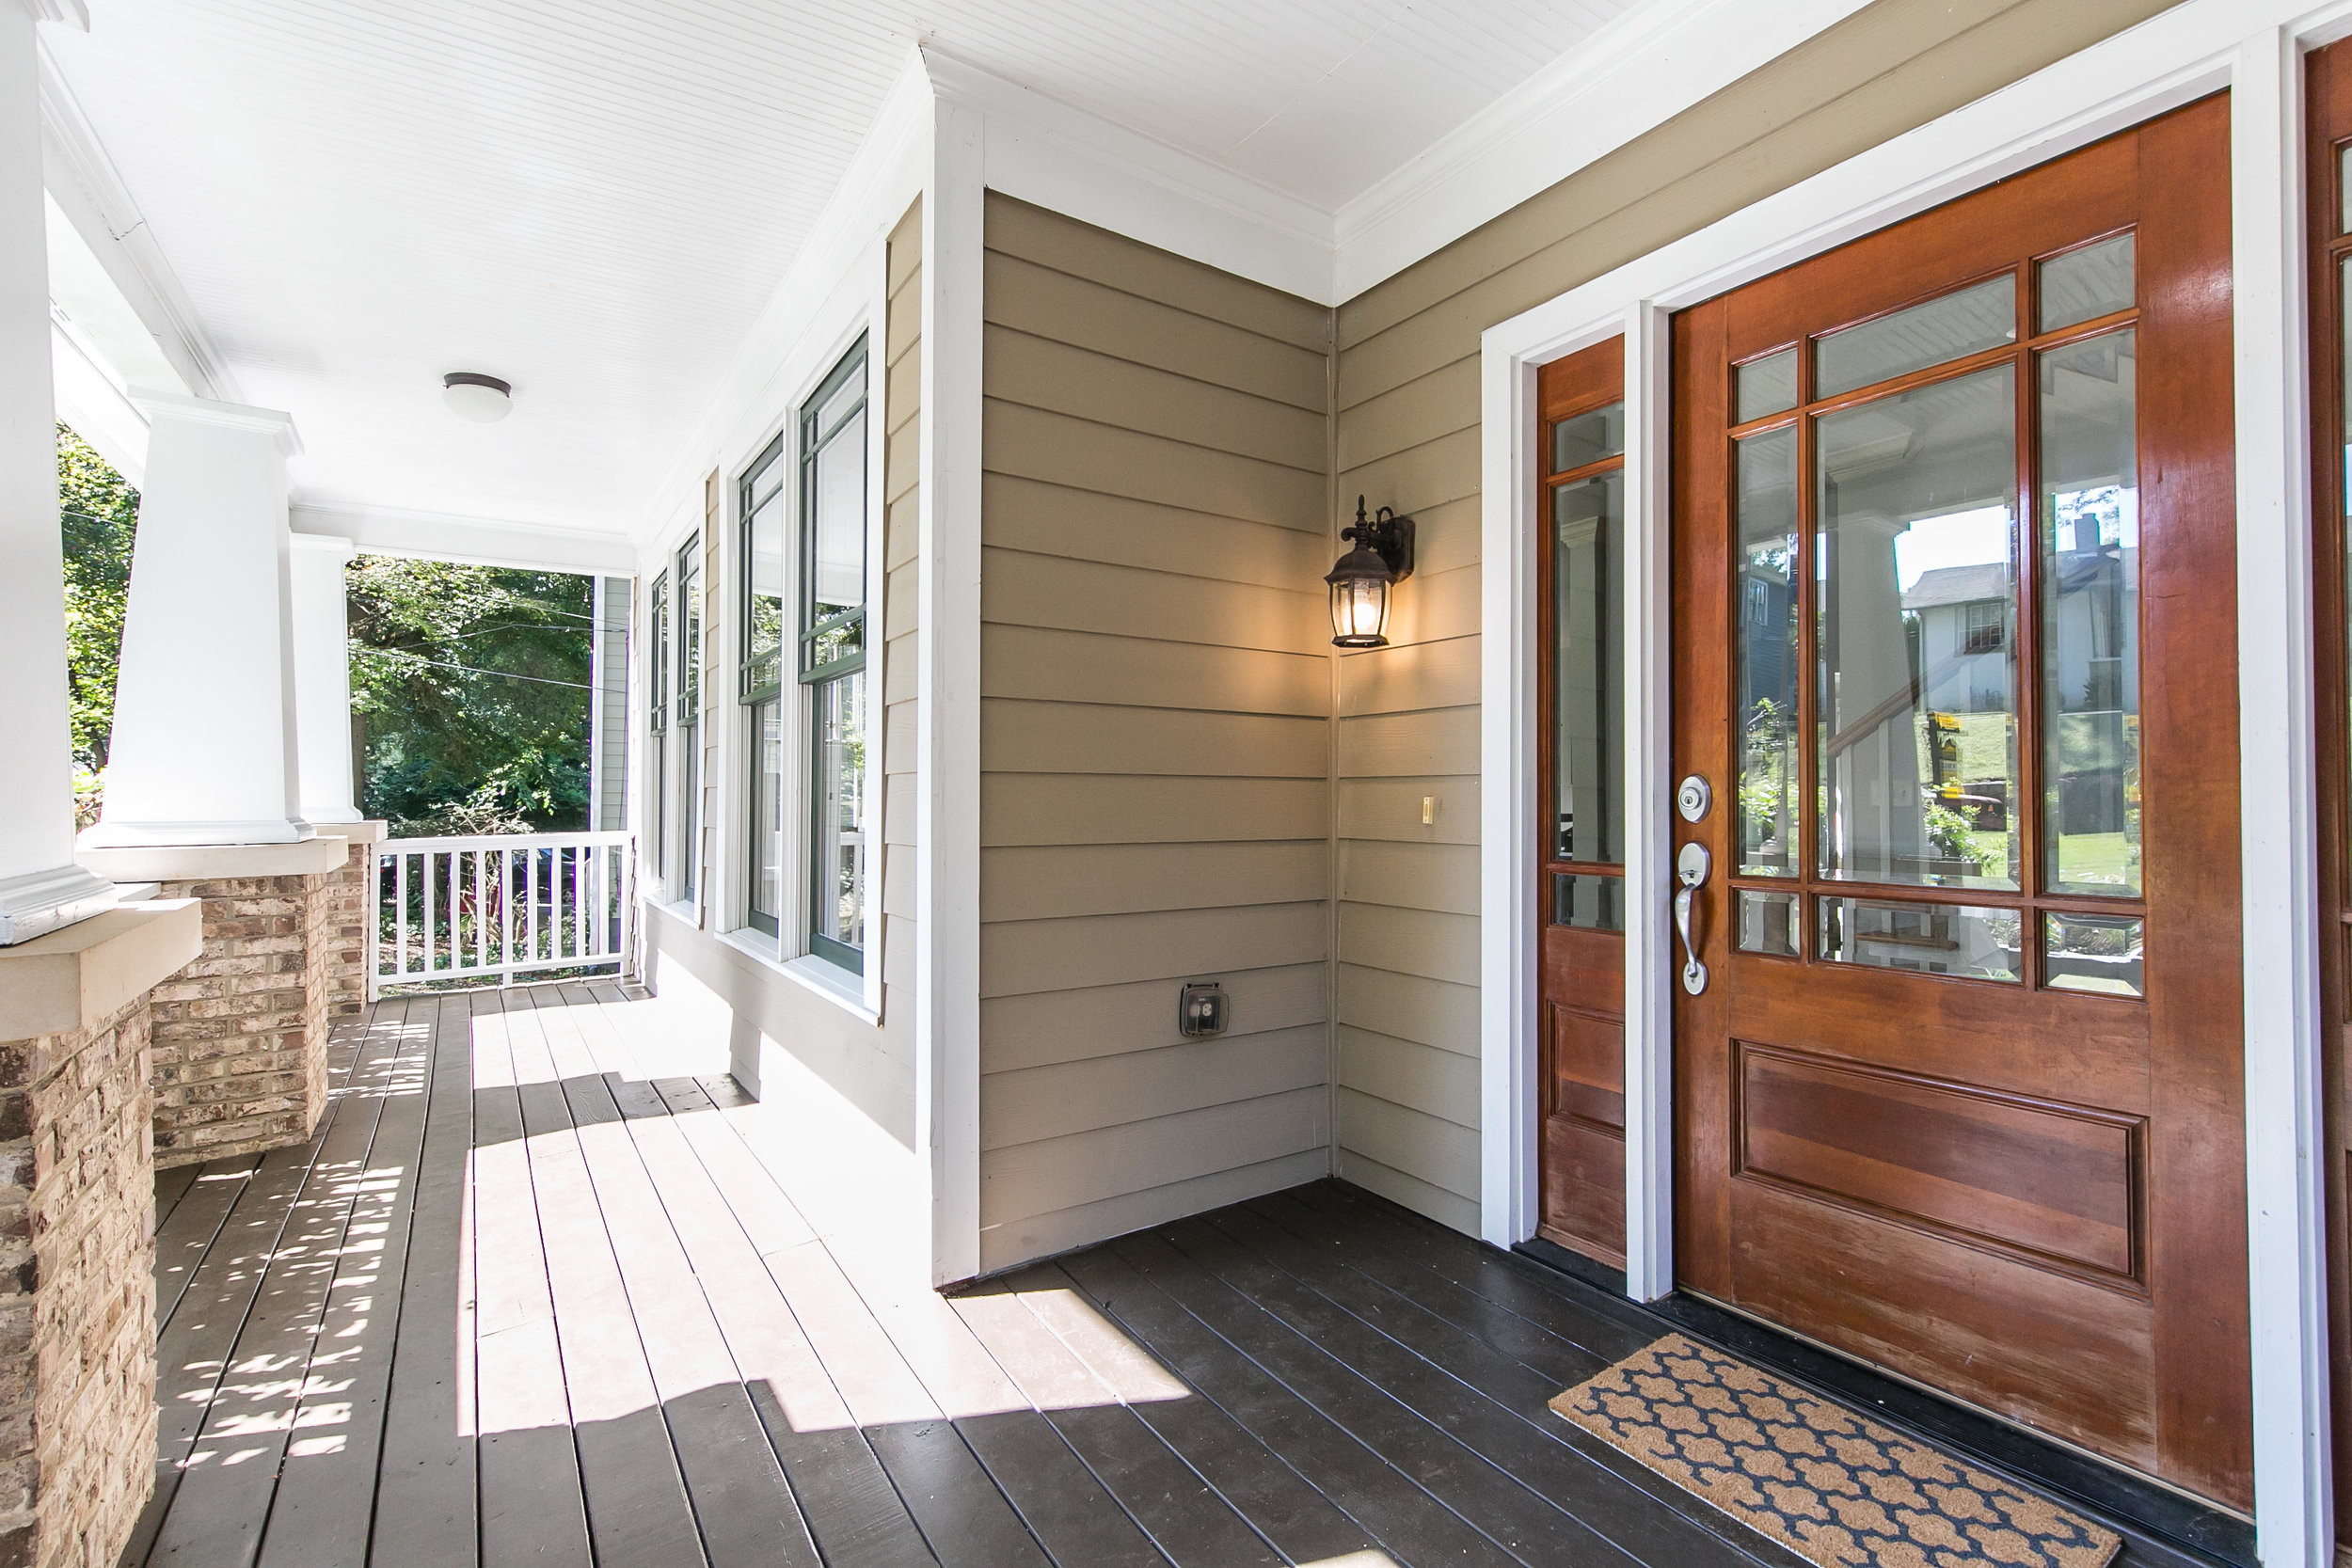 28 Lakeview-Front Porch 2.jpg